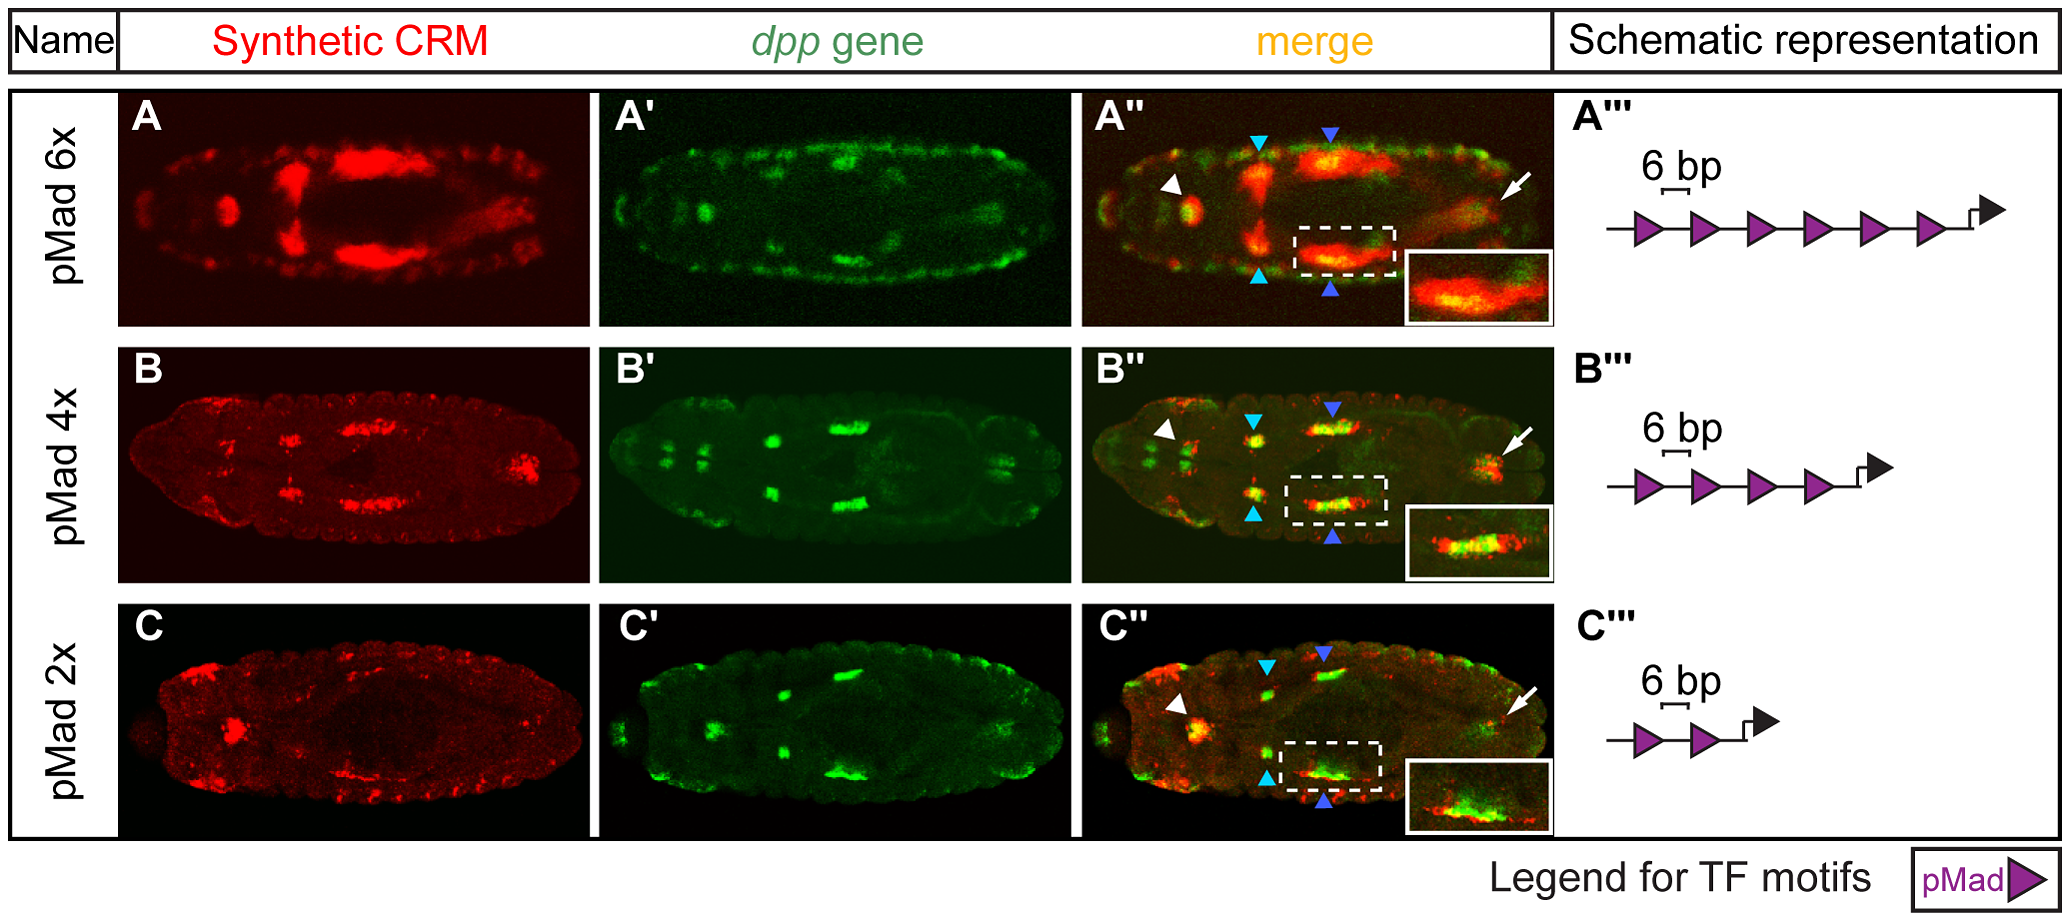 Altering the number of pMad motifs affects visceral mesoderm activity.